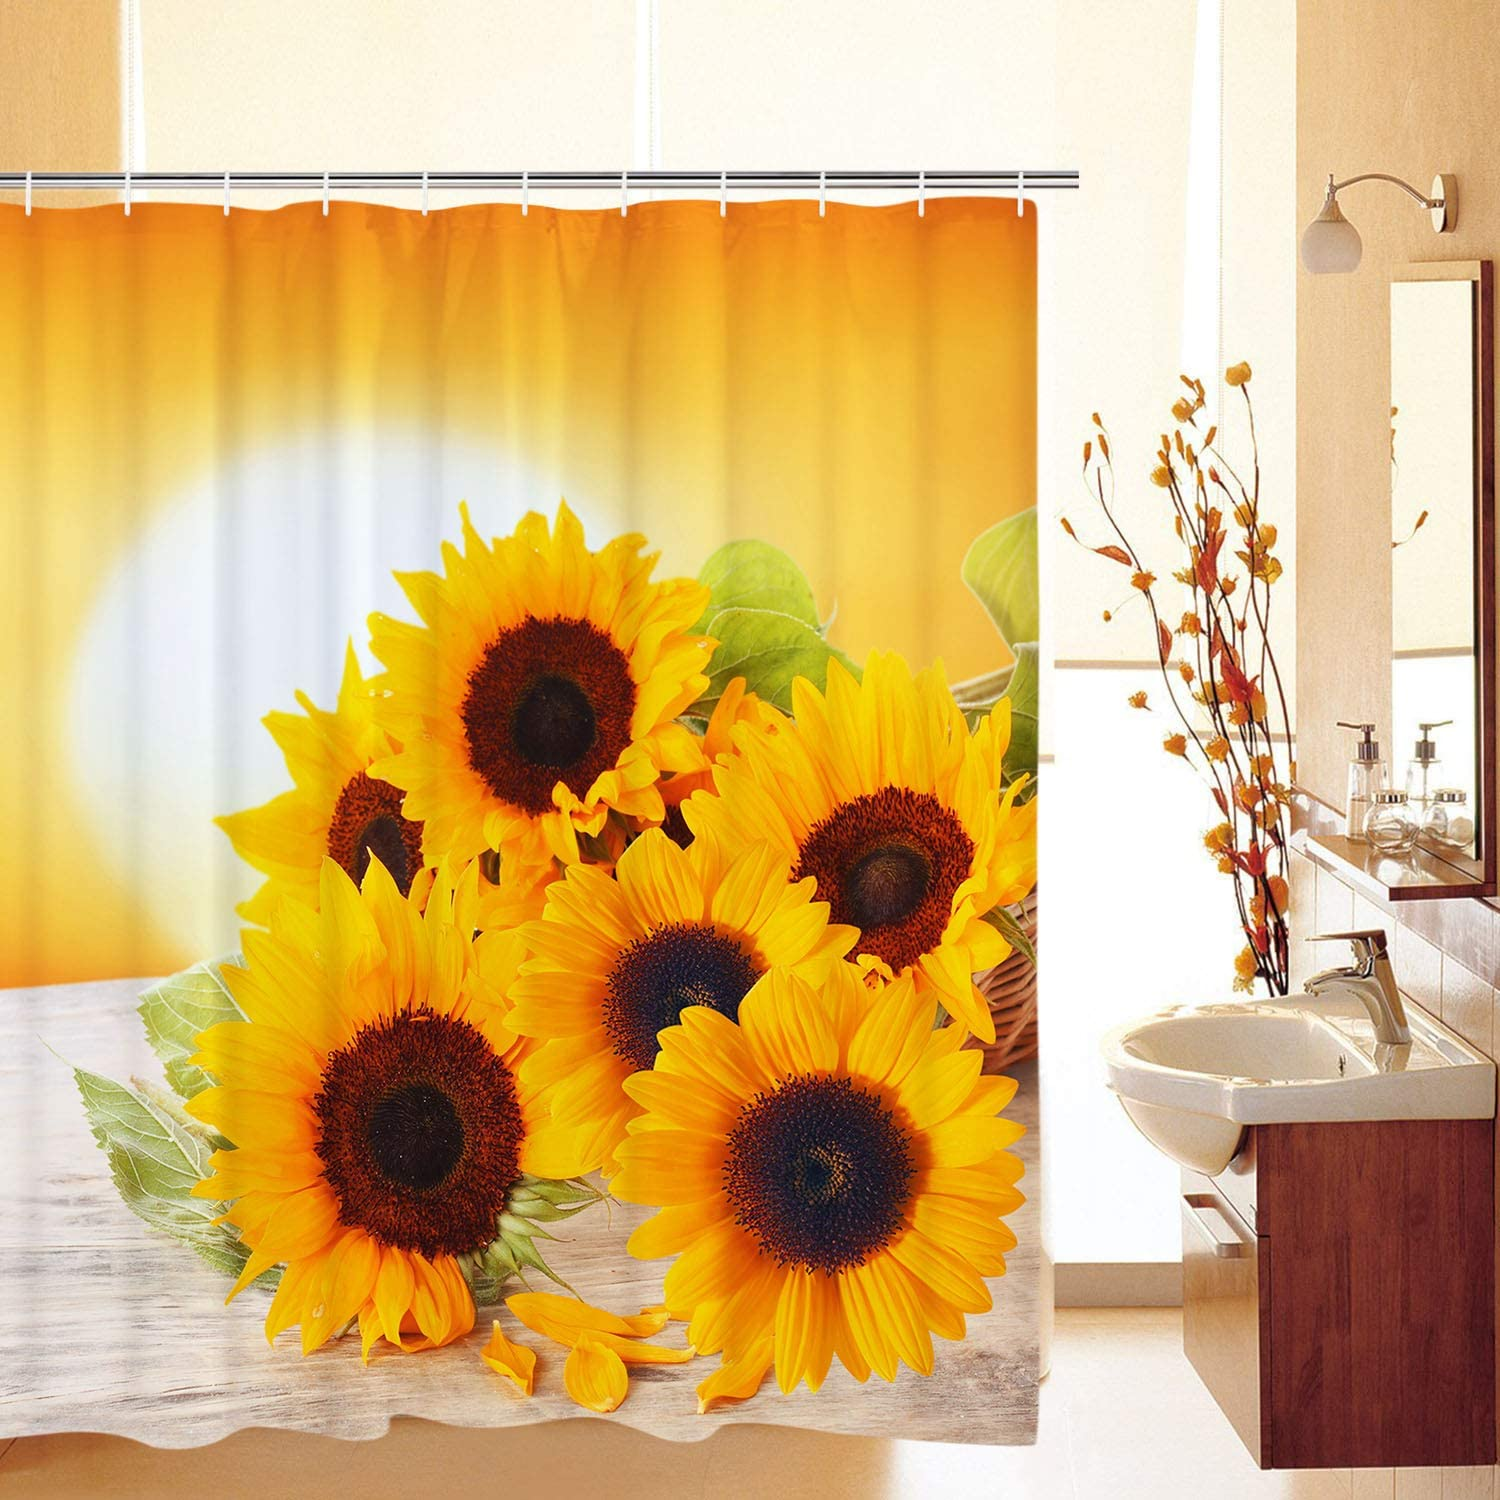 Likiyol Limited time cheap sale 40% OFF Cheap Sale Bathroom Shower Curtain The Sunset Sunflowers in